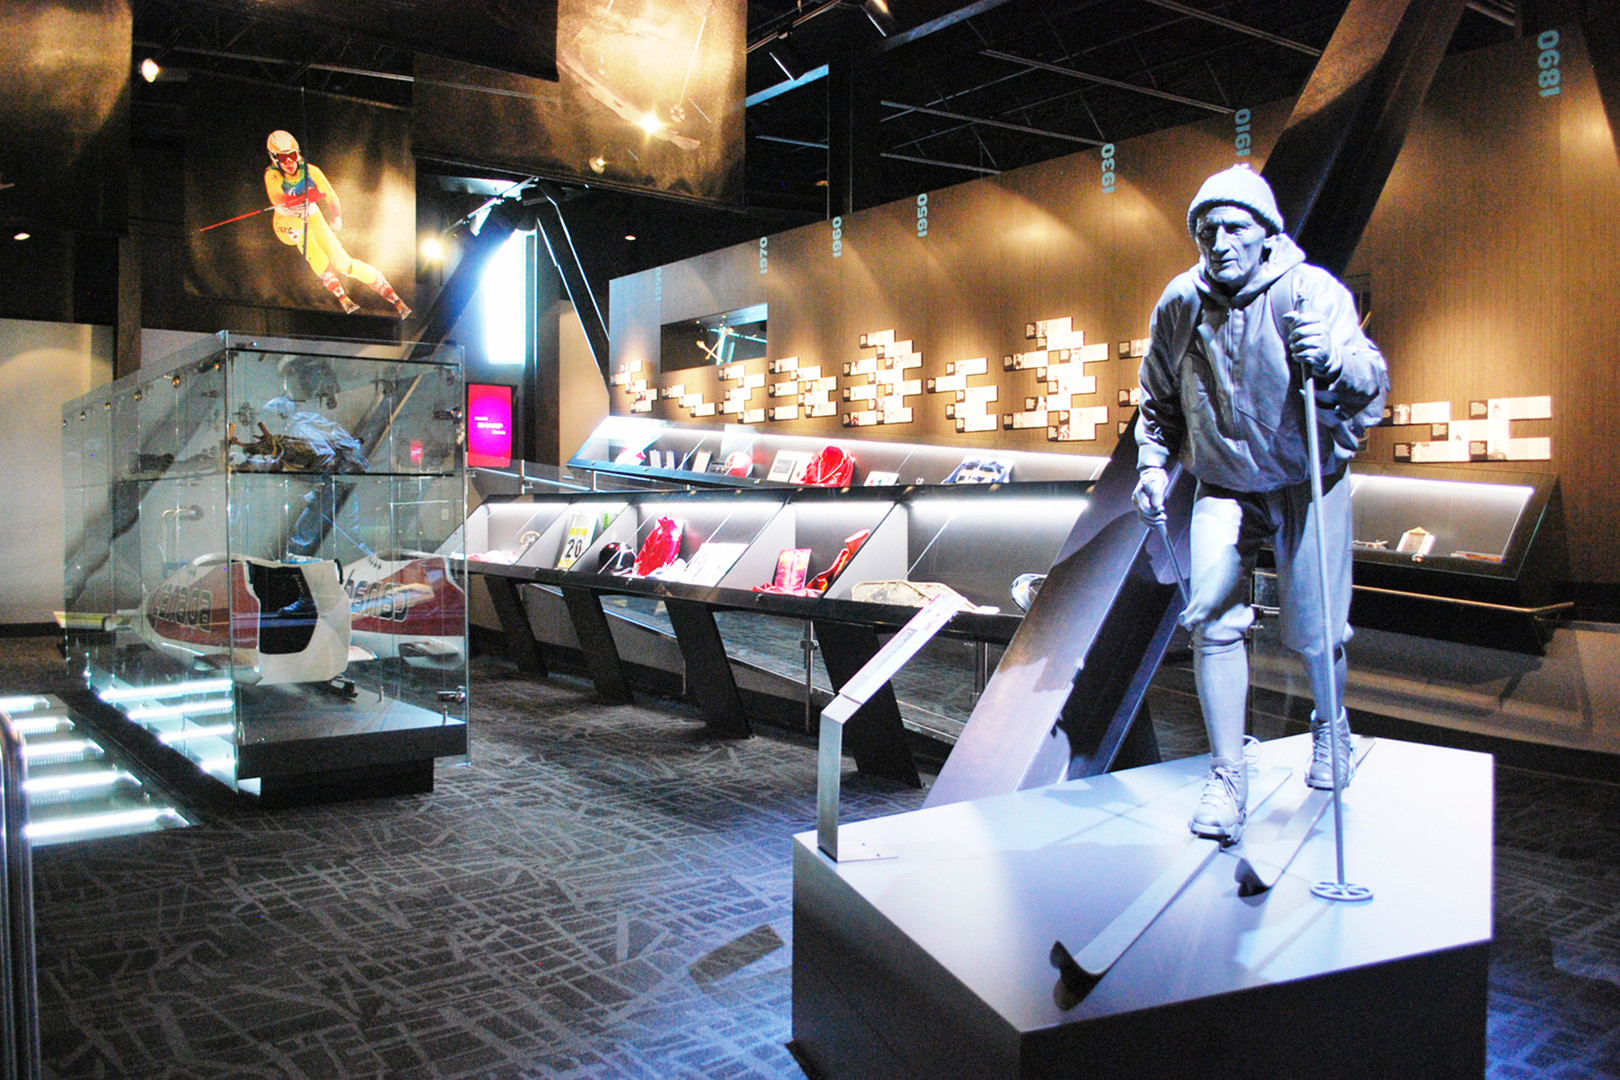 Canada's Sports Hall of Fame